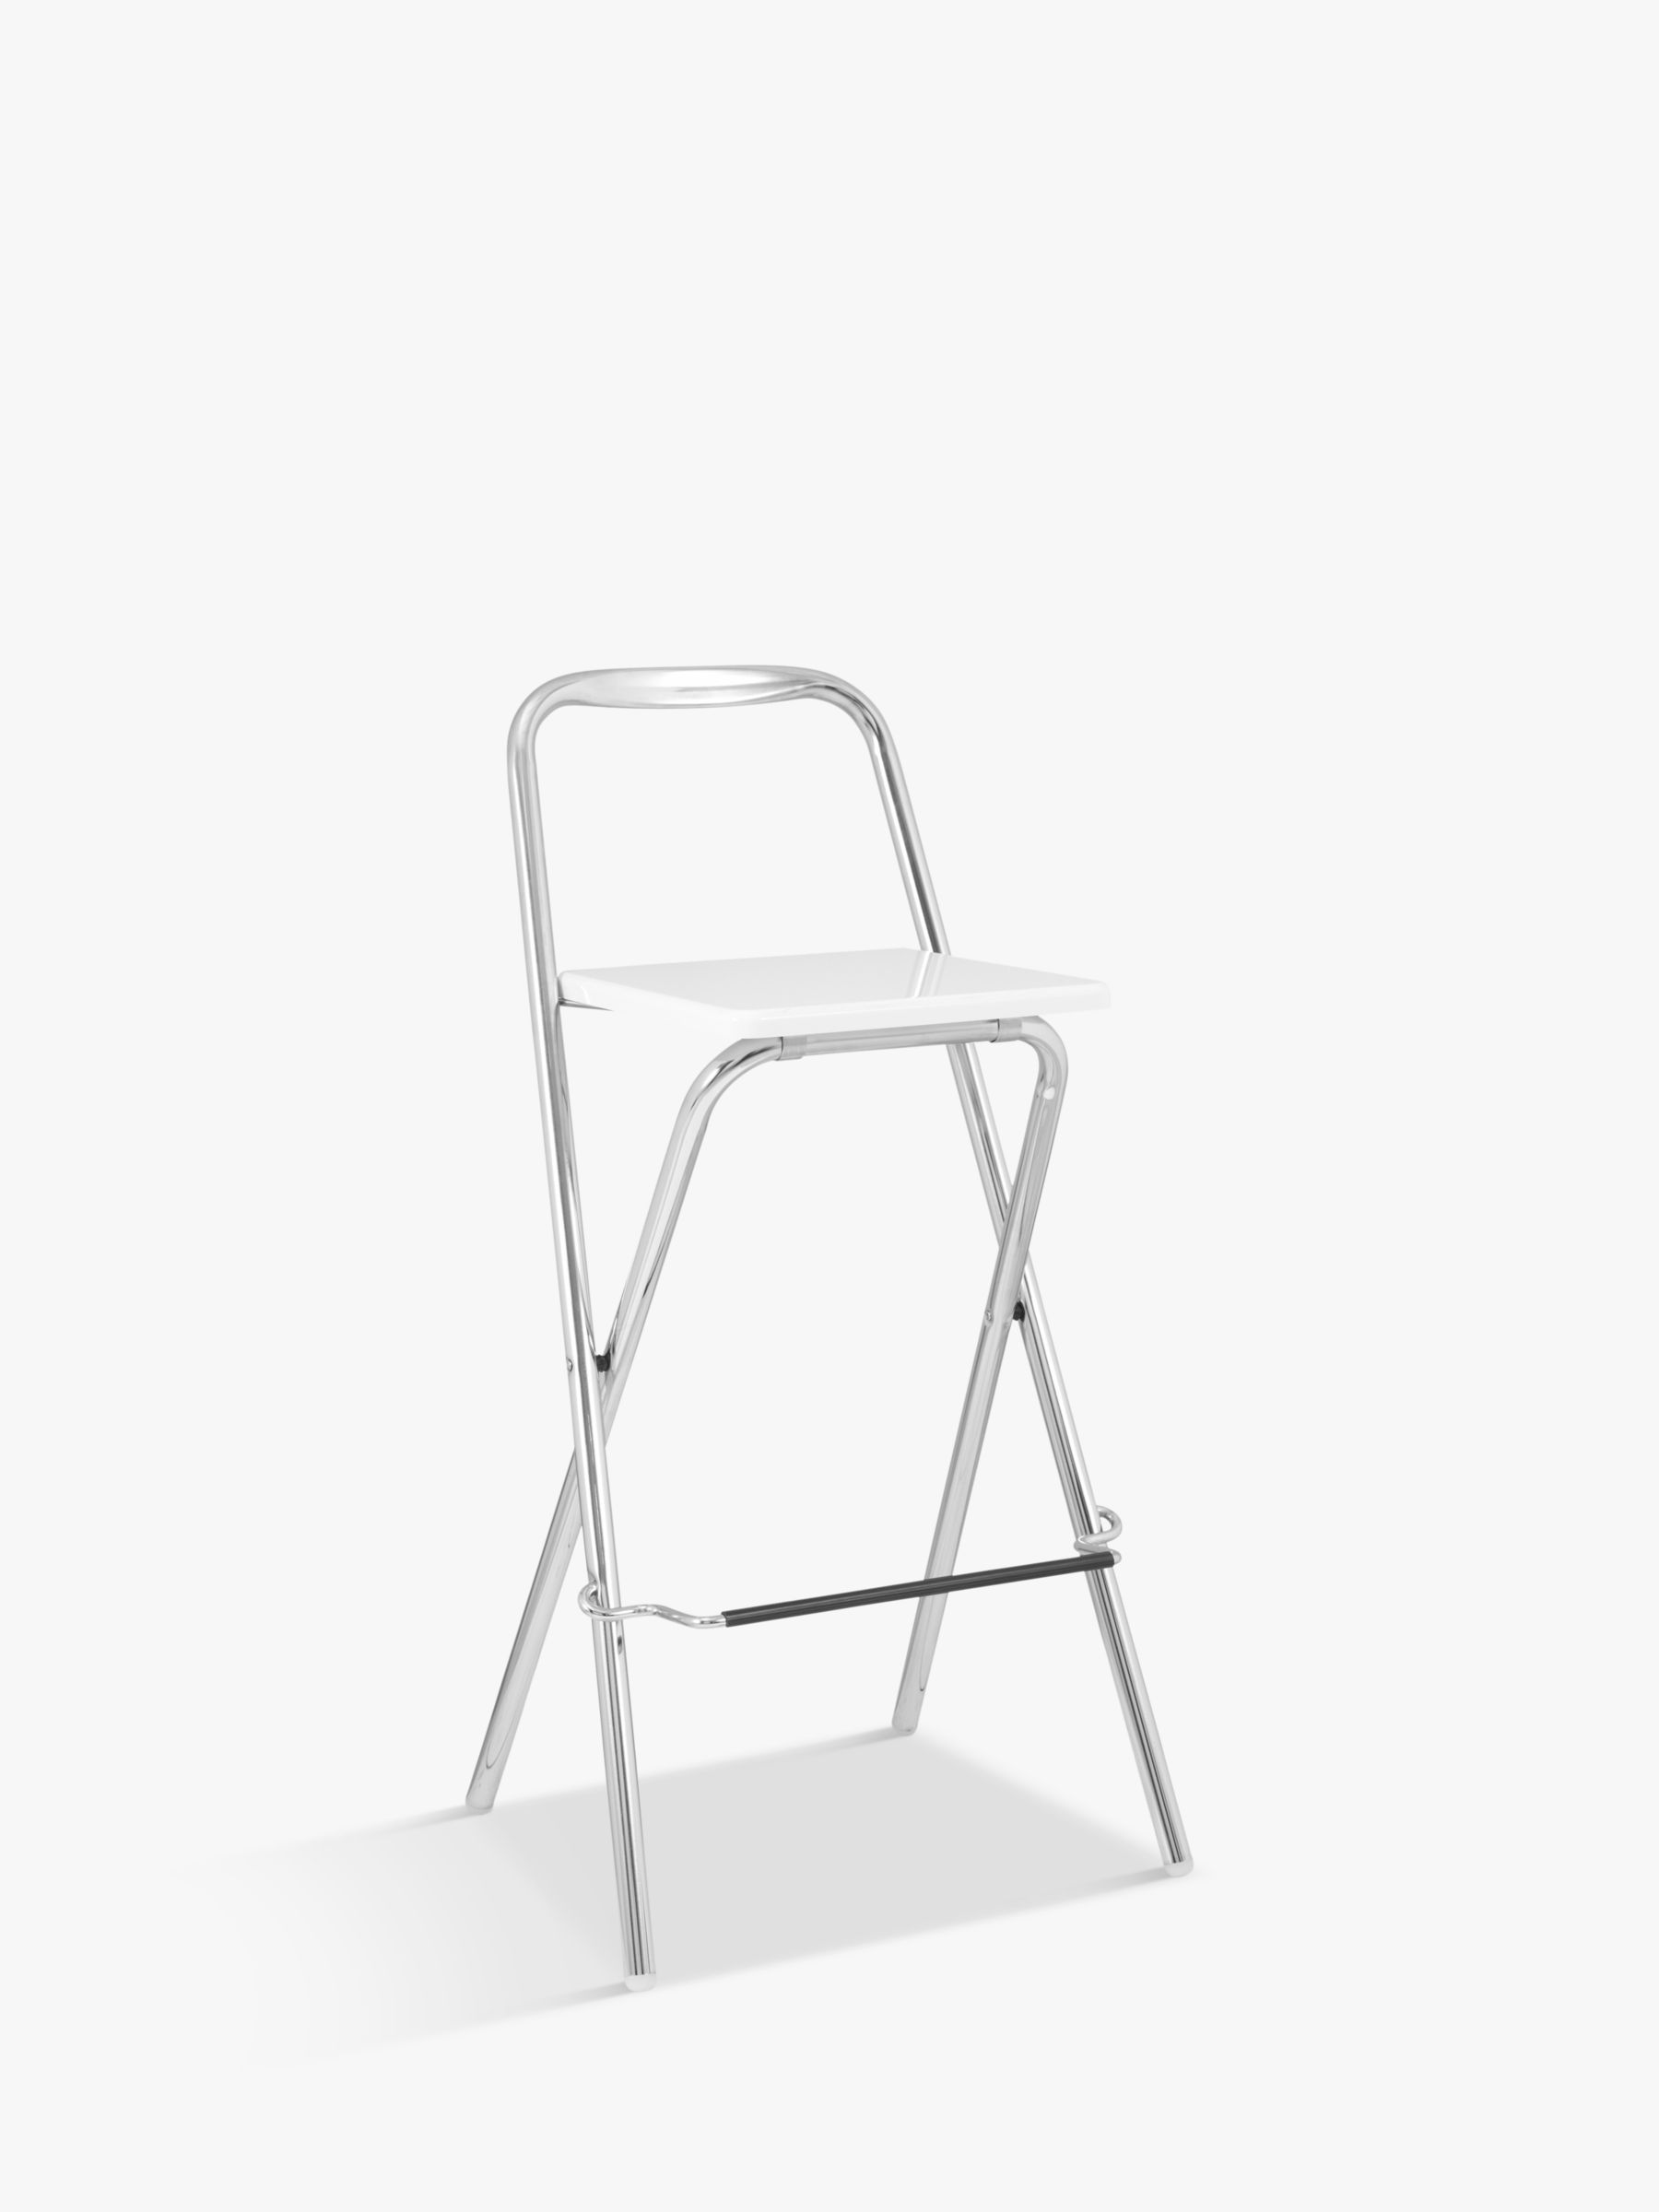 folding bar stool chairs chicago chair inc house by john lewis verona at partners buyhouse white online johnlewis com